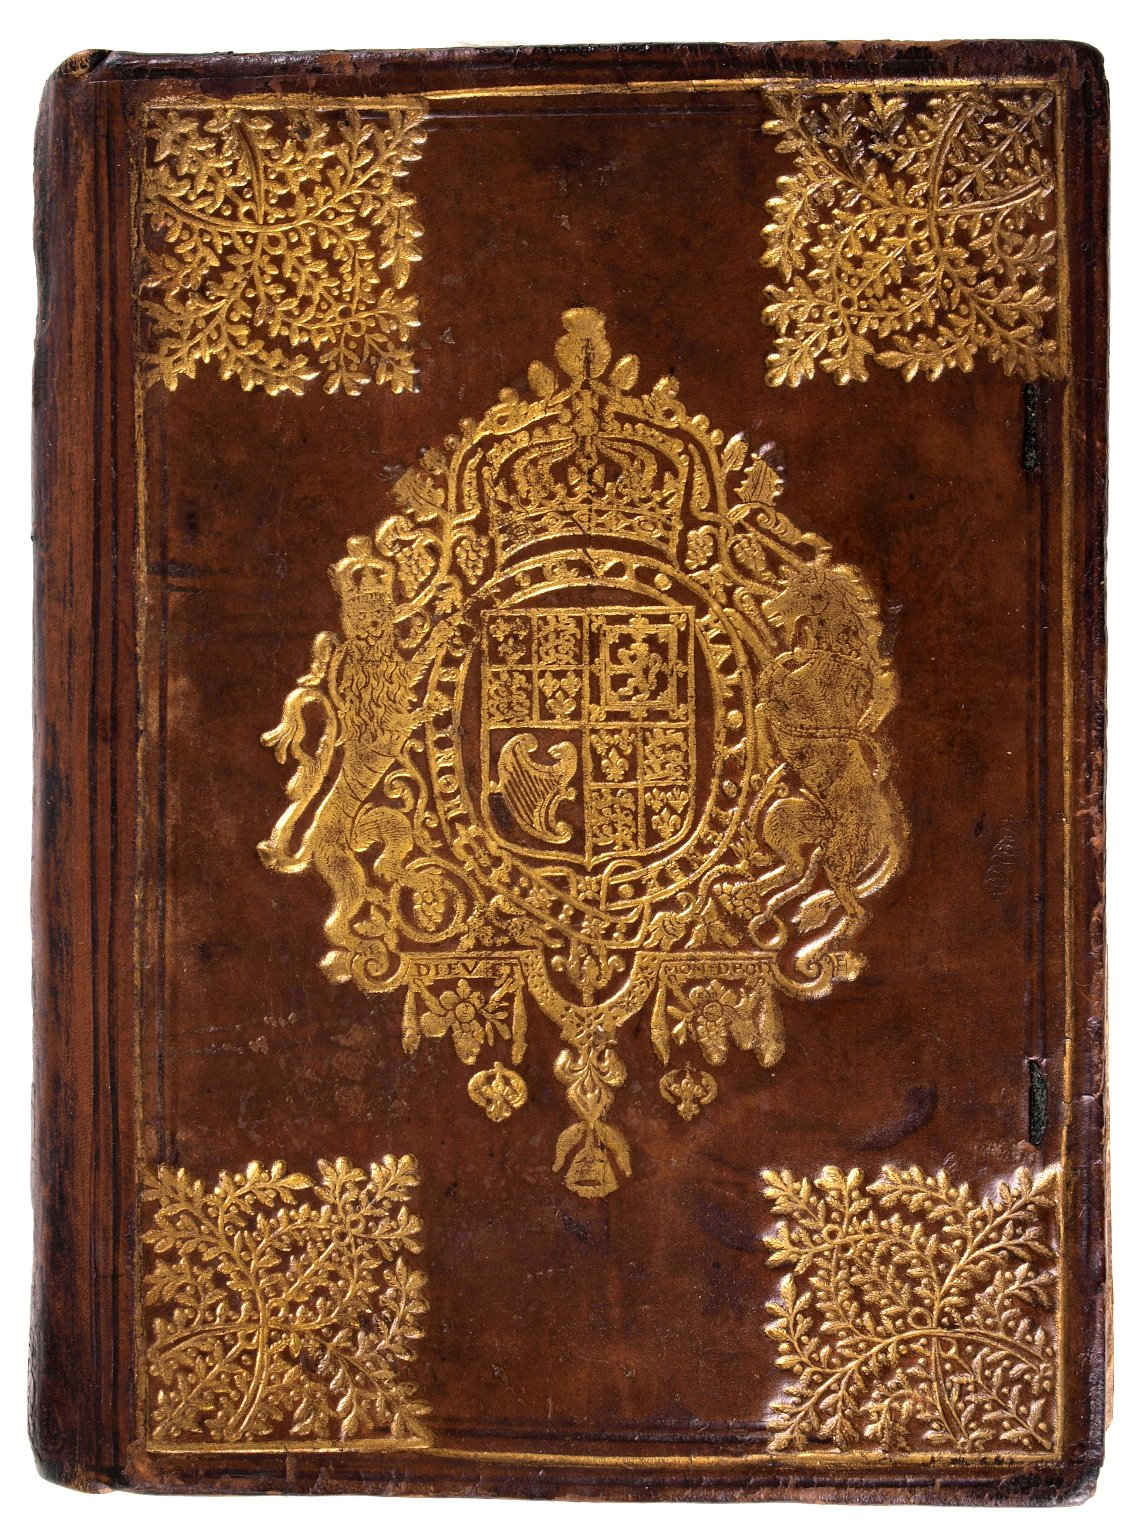 Front cover, STC 246.